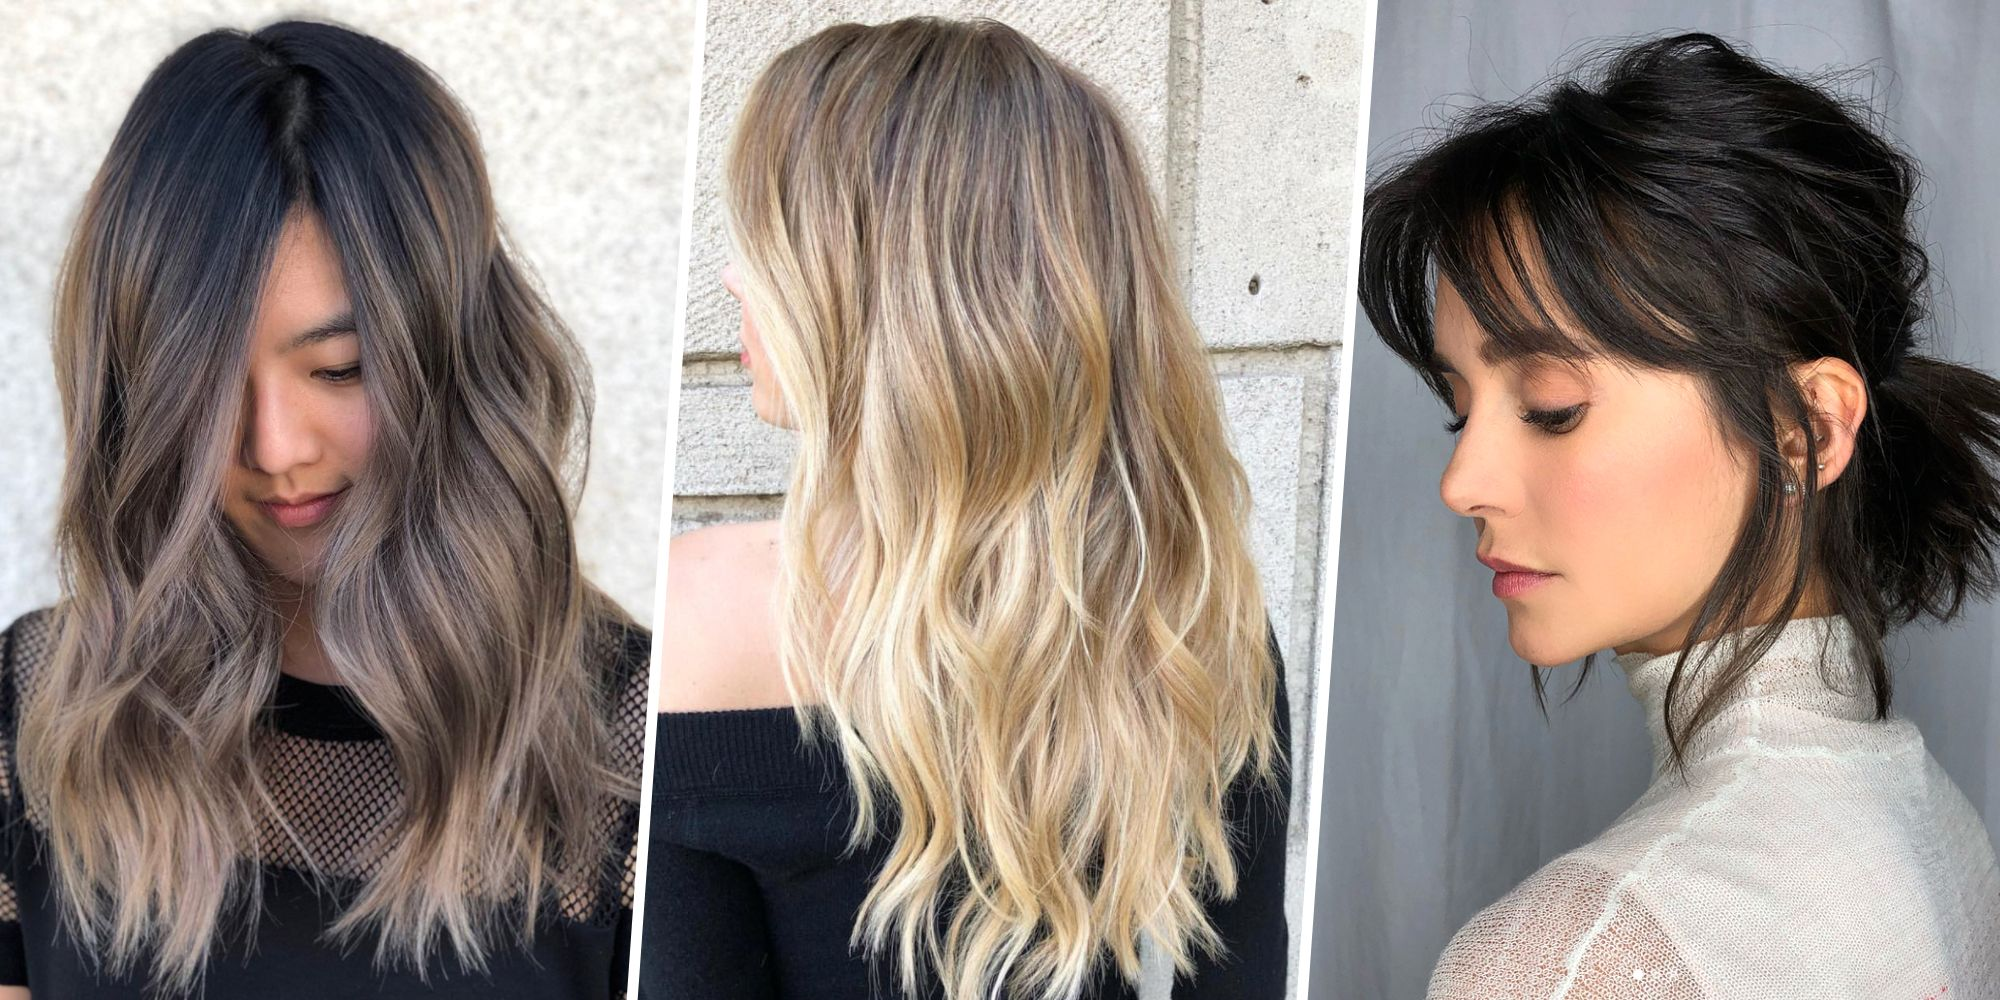 6 Best Hair Color Trends 2018 - Top Hair Colors of the Year